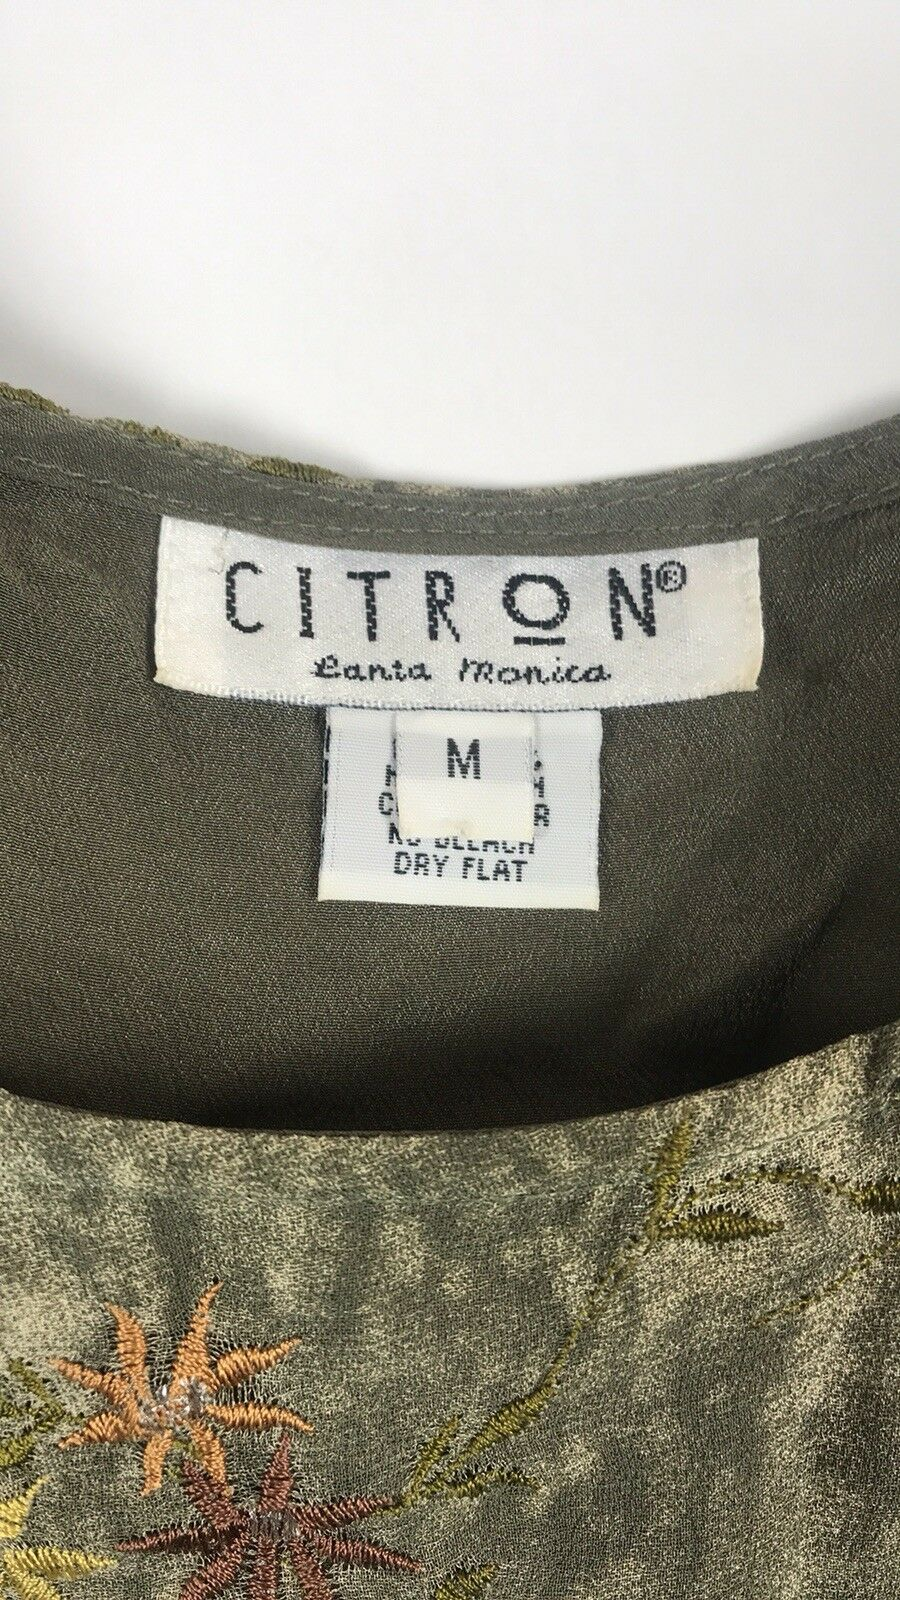 Citron Santa Monica embroidered embroidered embroidered maxi dress 09a94b